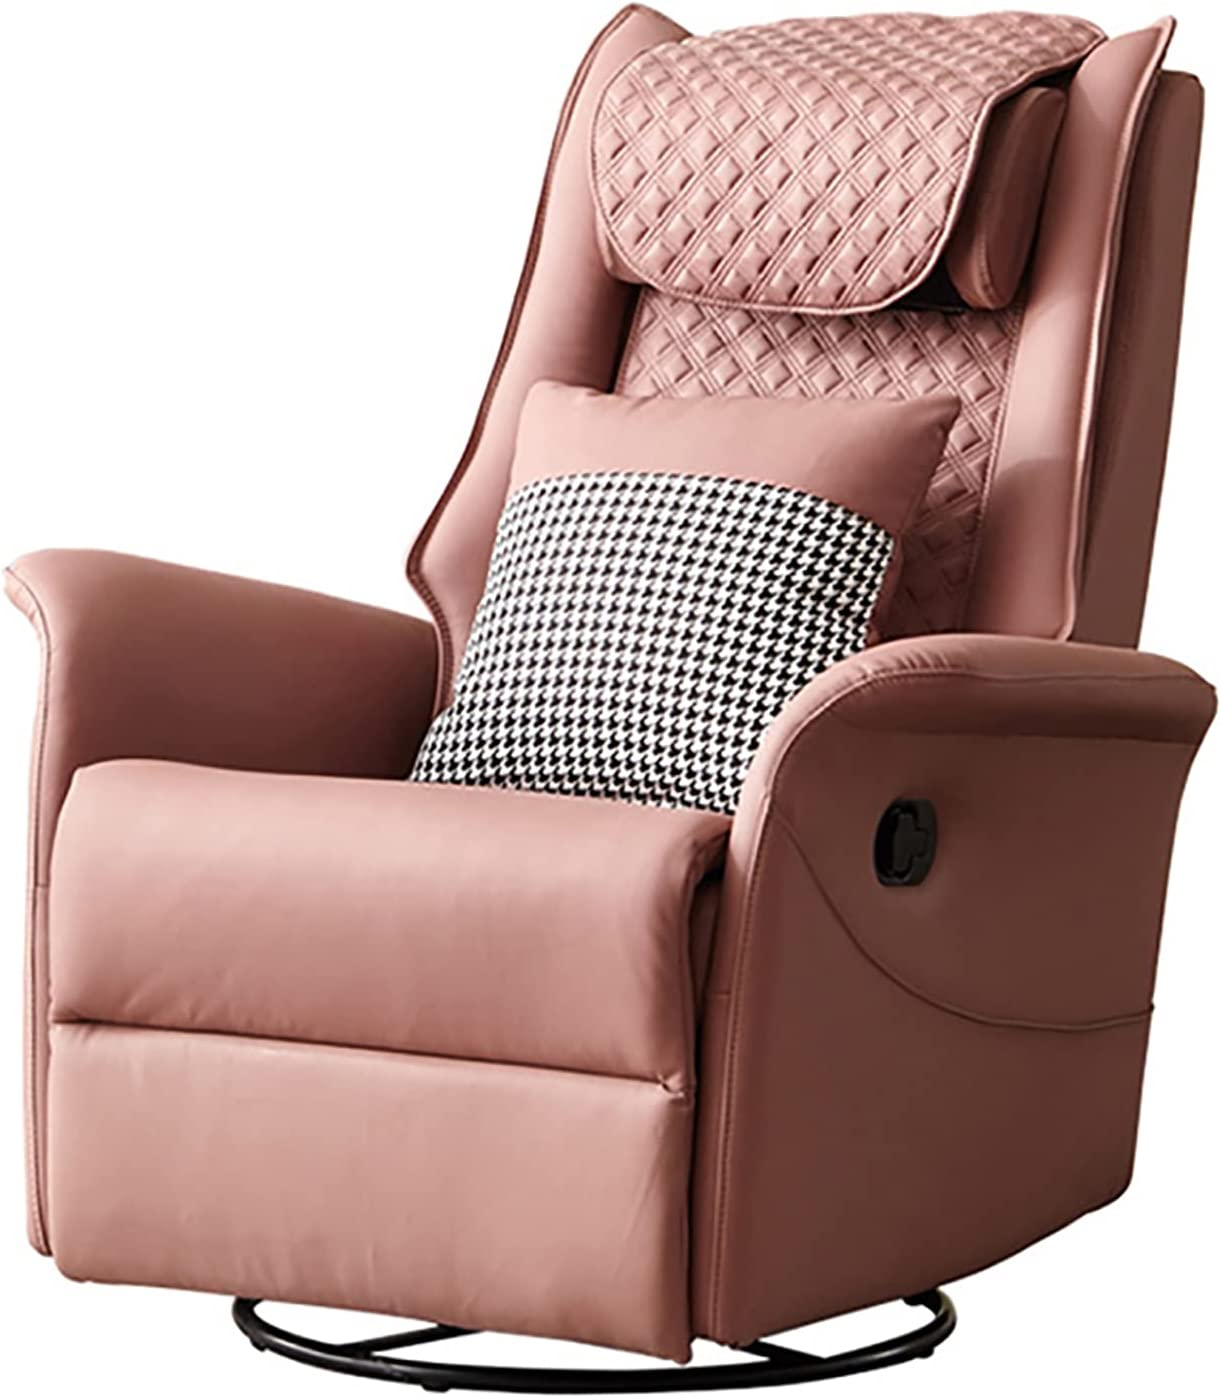 Modern Raleigh Mall Massage Leisure Rocking for Recliners A surprise price is realized Elderl Chair